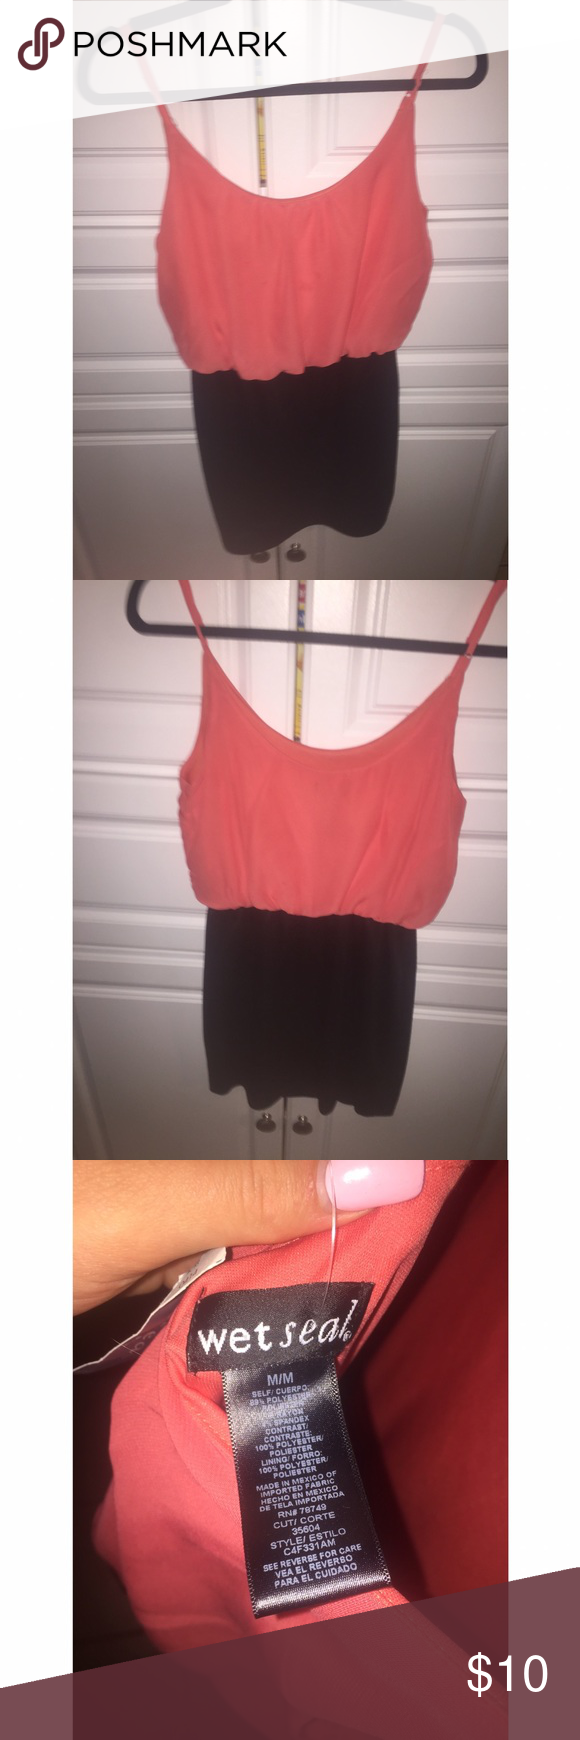 NWT Coral Party/Clubbing Dress🎉 ◾️Size: Medium ◾️Slight Spot that can probably be removed by washing  ◾️Color: Coral ◾️Brand: Wet Seal ◾️Worn: Never/ New With Tags ◾️ Manufacturing Country: Mexico of Imported Goods ◾️ Made of: 89% Polyester, 7% Rayon and 4% Spandex. Lining 100% Polyester ◾️No trades  ◾️Feel free to ask any questions💕 ◾️Ships out same or next day Wet Seal Dresses Mini